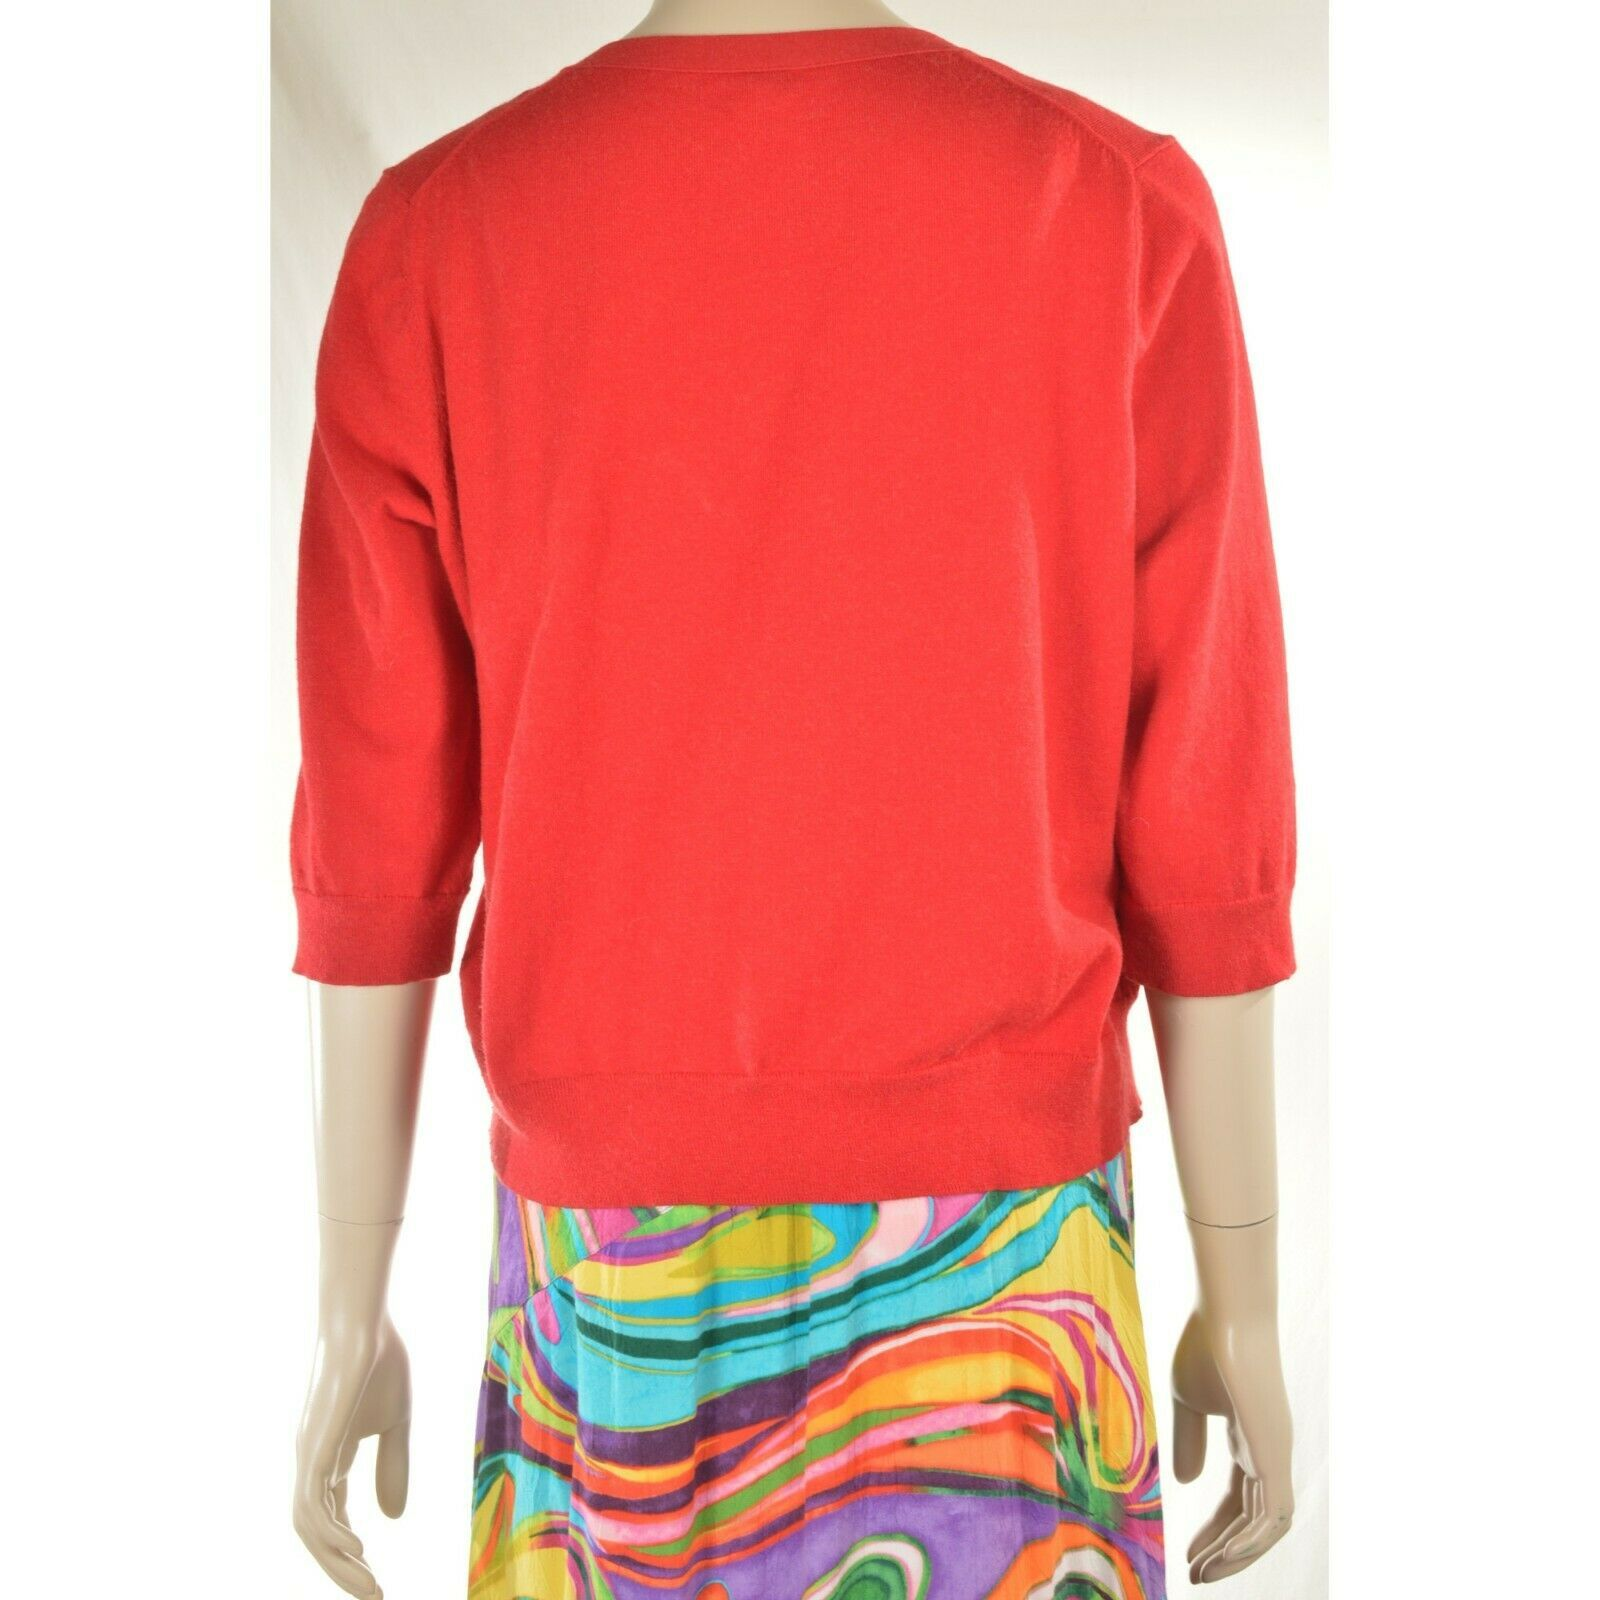 Eileen Fisher sweater M red cardigan 3/4 sleeves organic cotton cashmere blend image 3